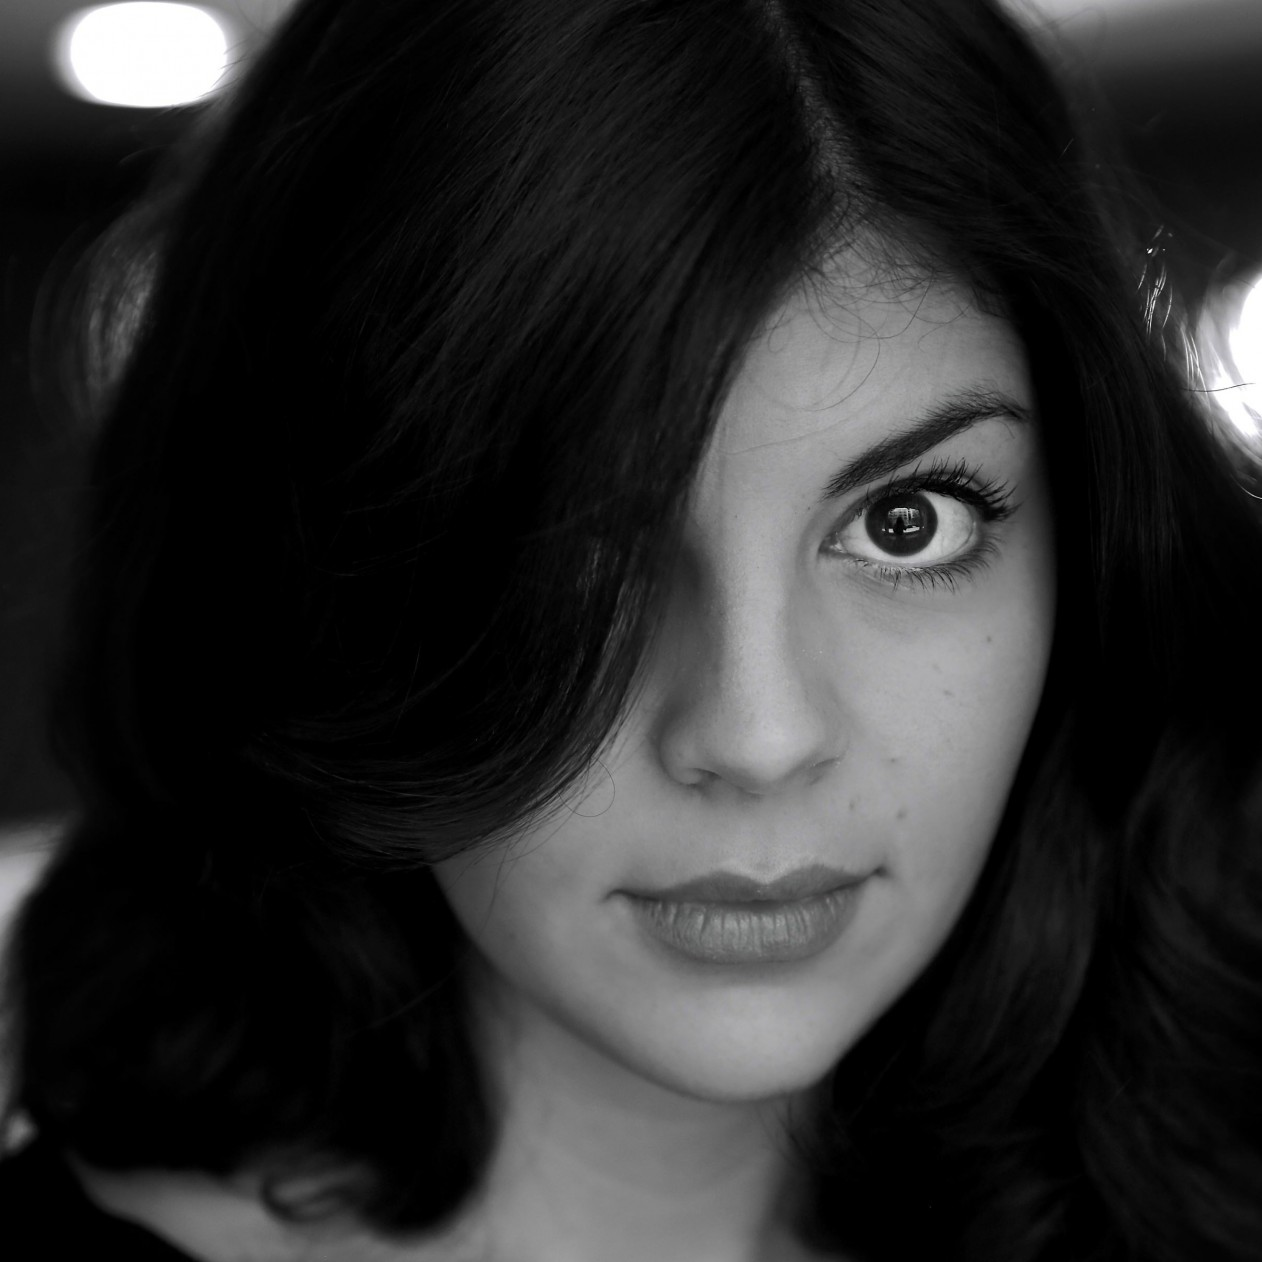 Nikki Yanofsky Black & White Portrait Wallpaper for Apple iPad mini